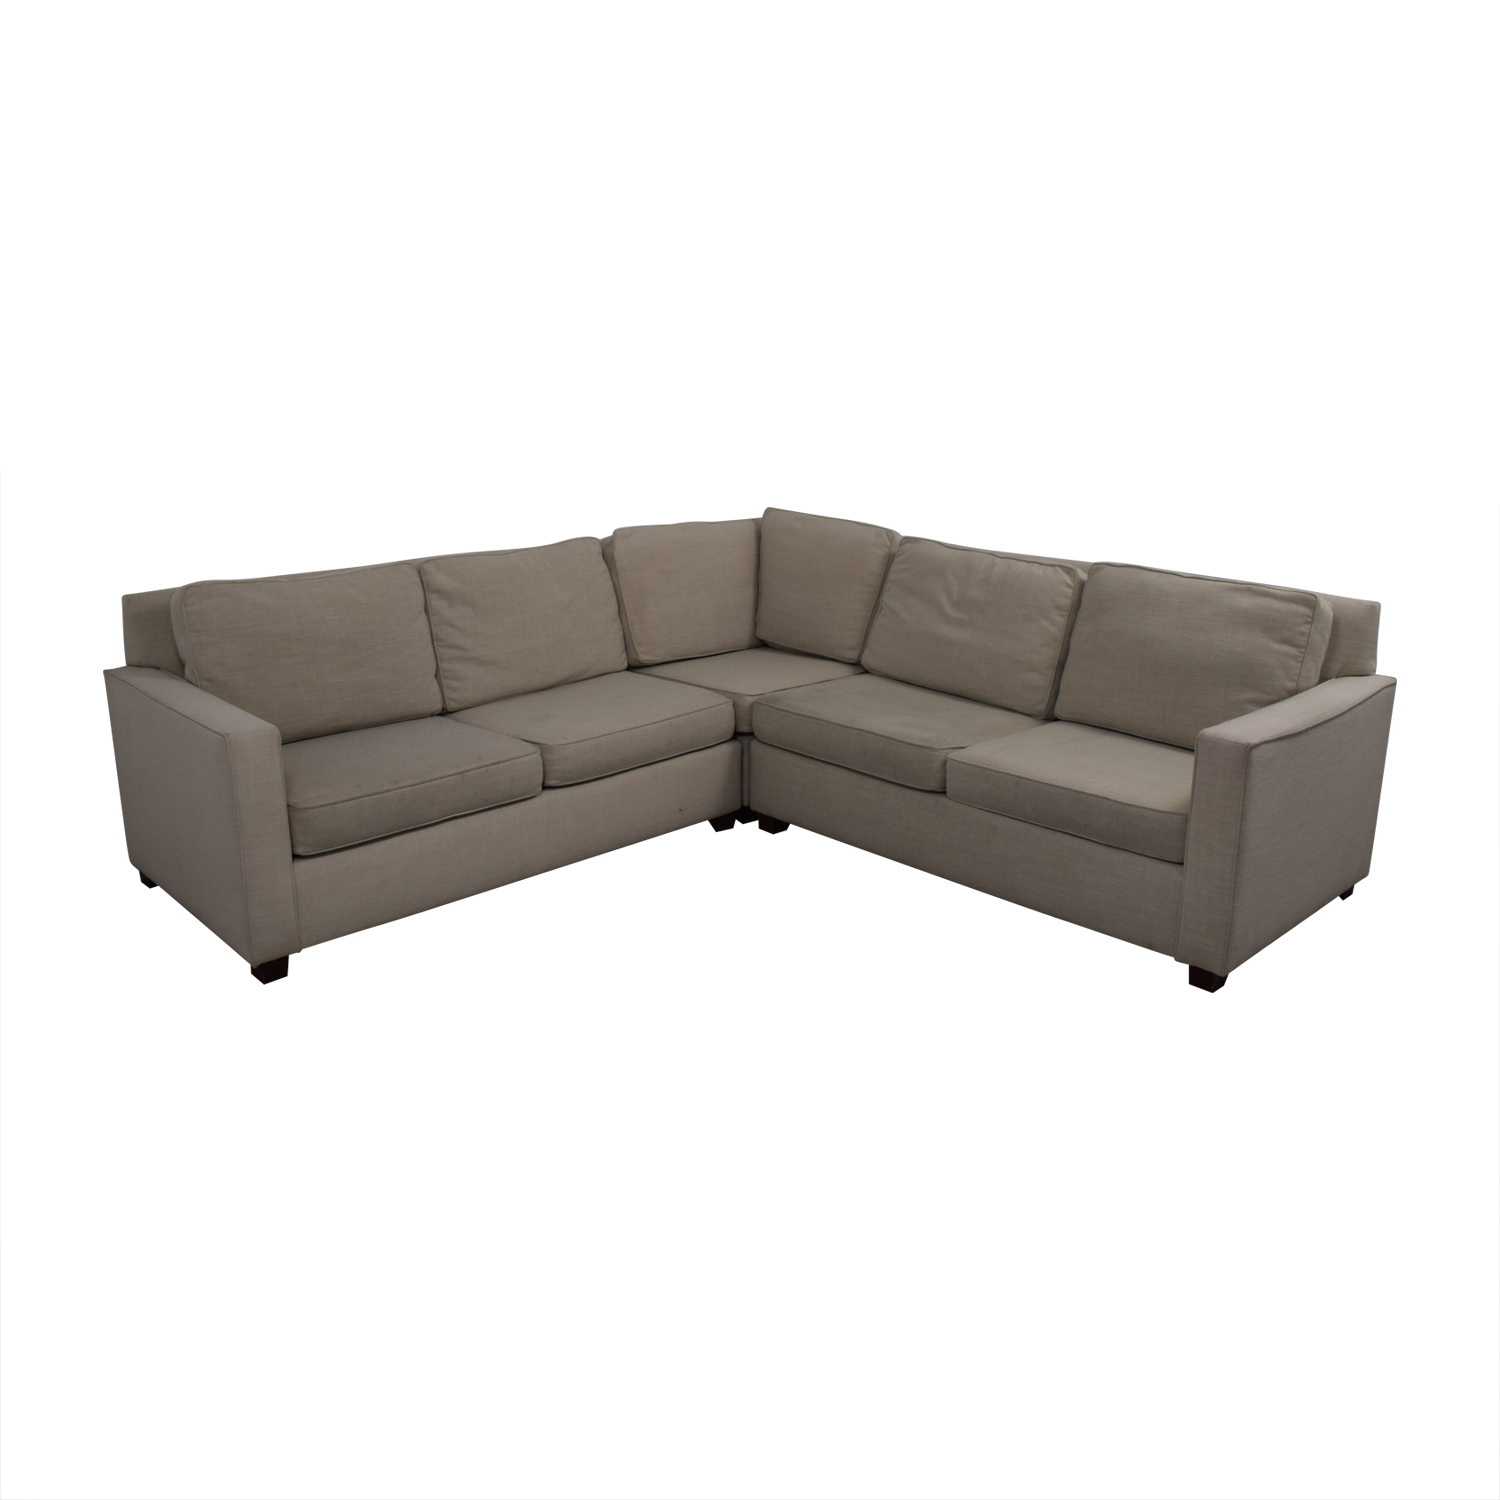 West Elm West Elm Henry Beige L-Shaped Sectional discount